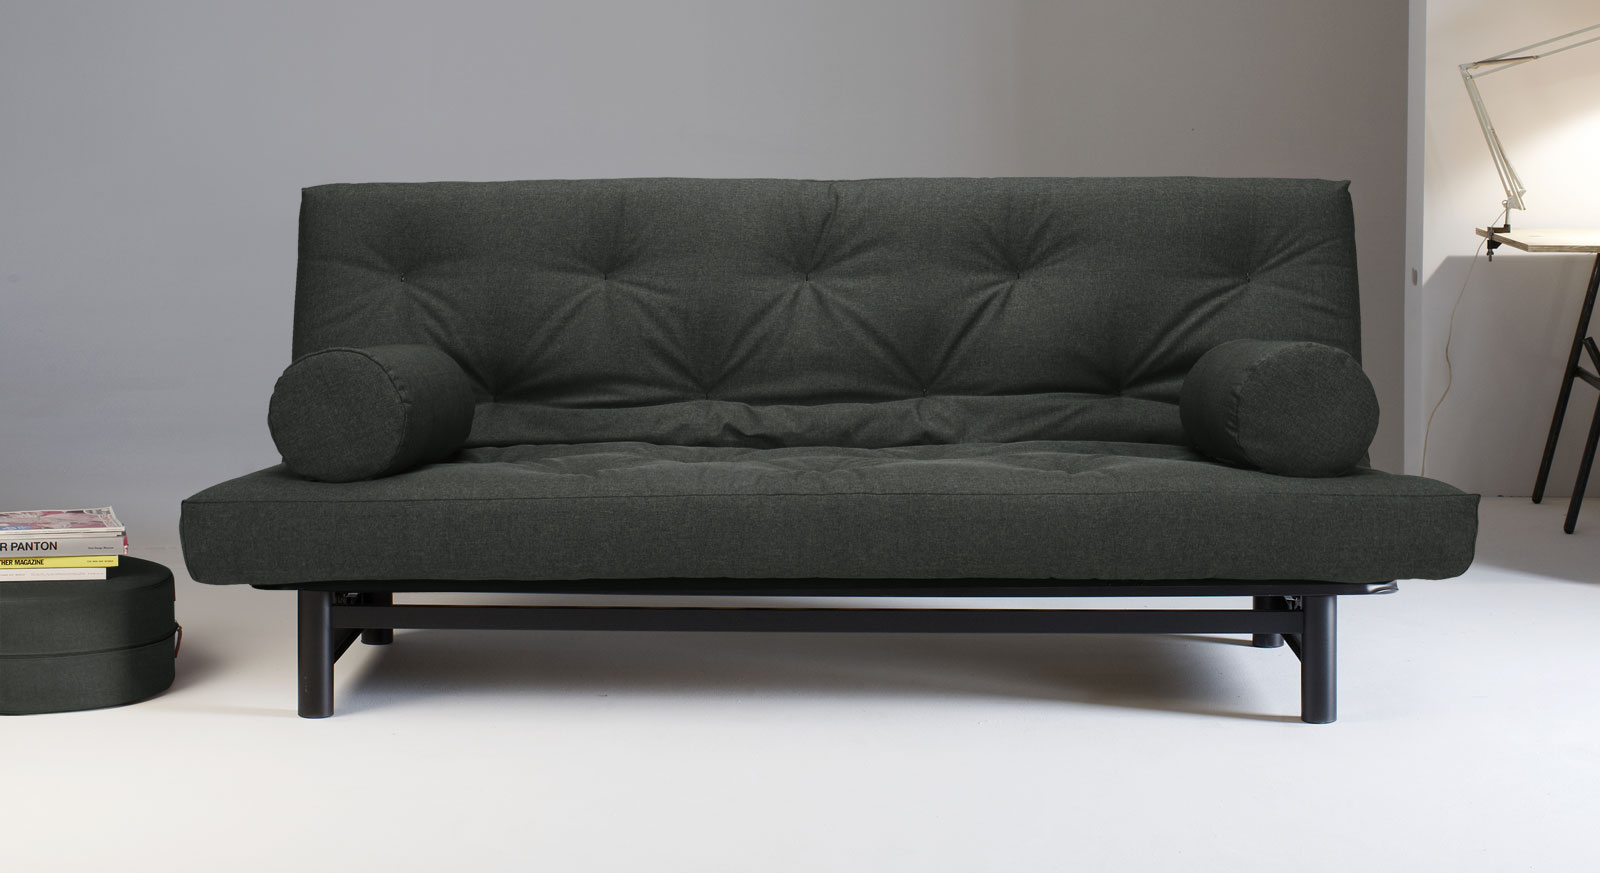 couch bezug interesting couch bezug with couch bezug couch bezug schwarz sitzer with couch. Black Bedroom Furniture Sets. Home Design Ideas